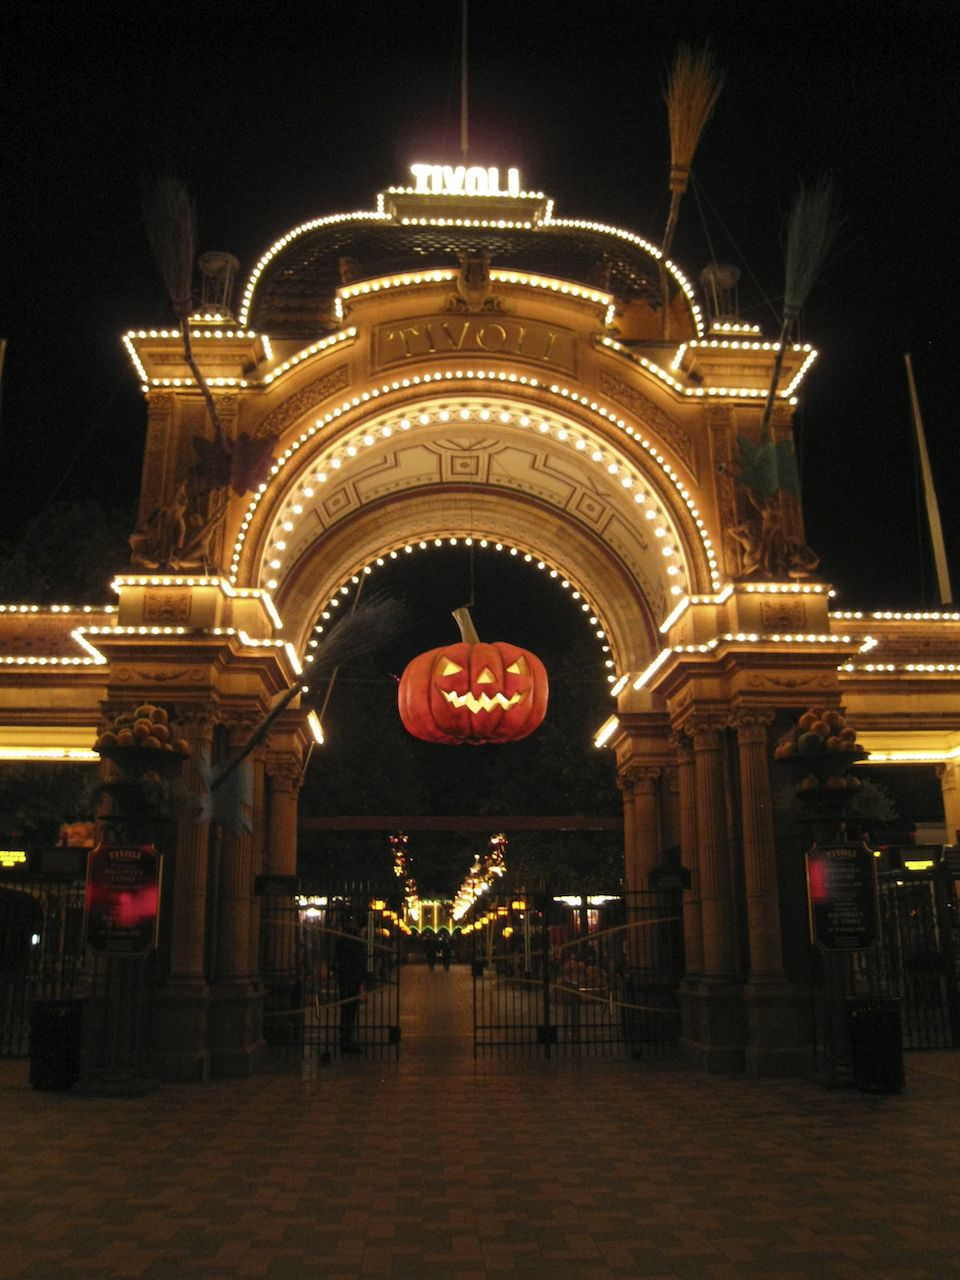 Tivoli Gardens, all decked out for Halloween.